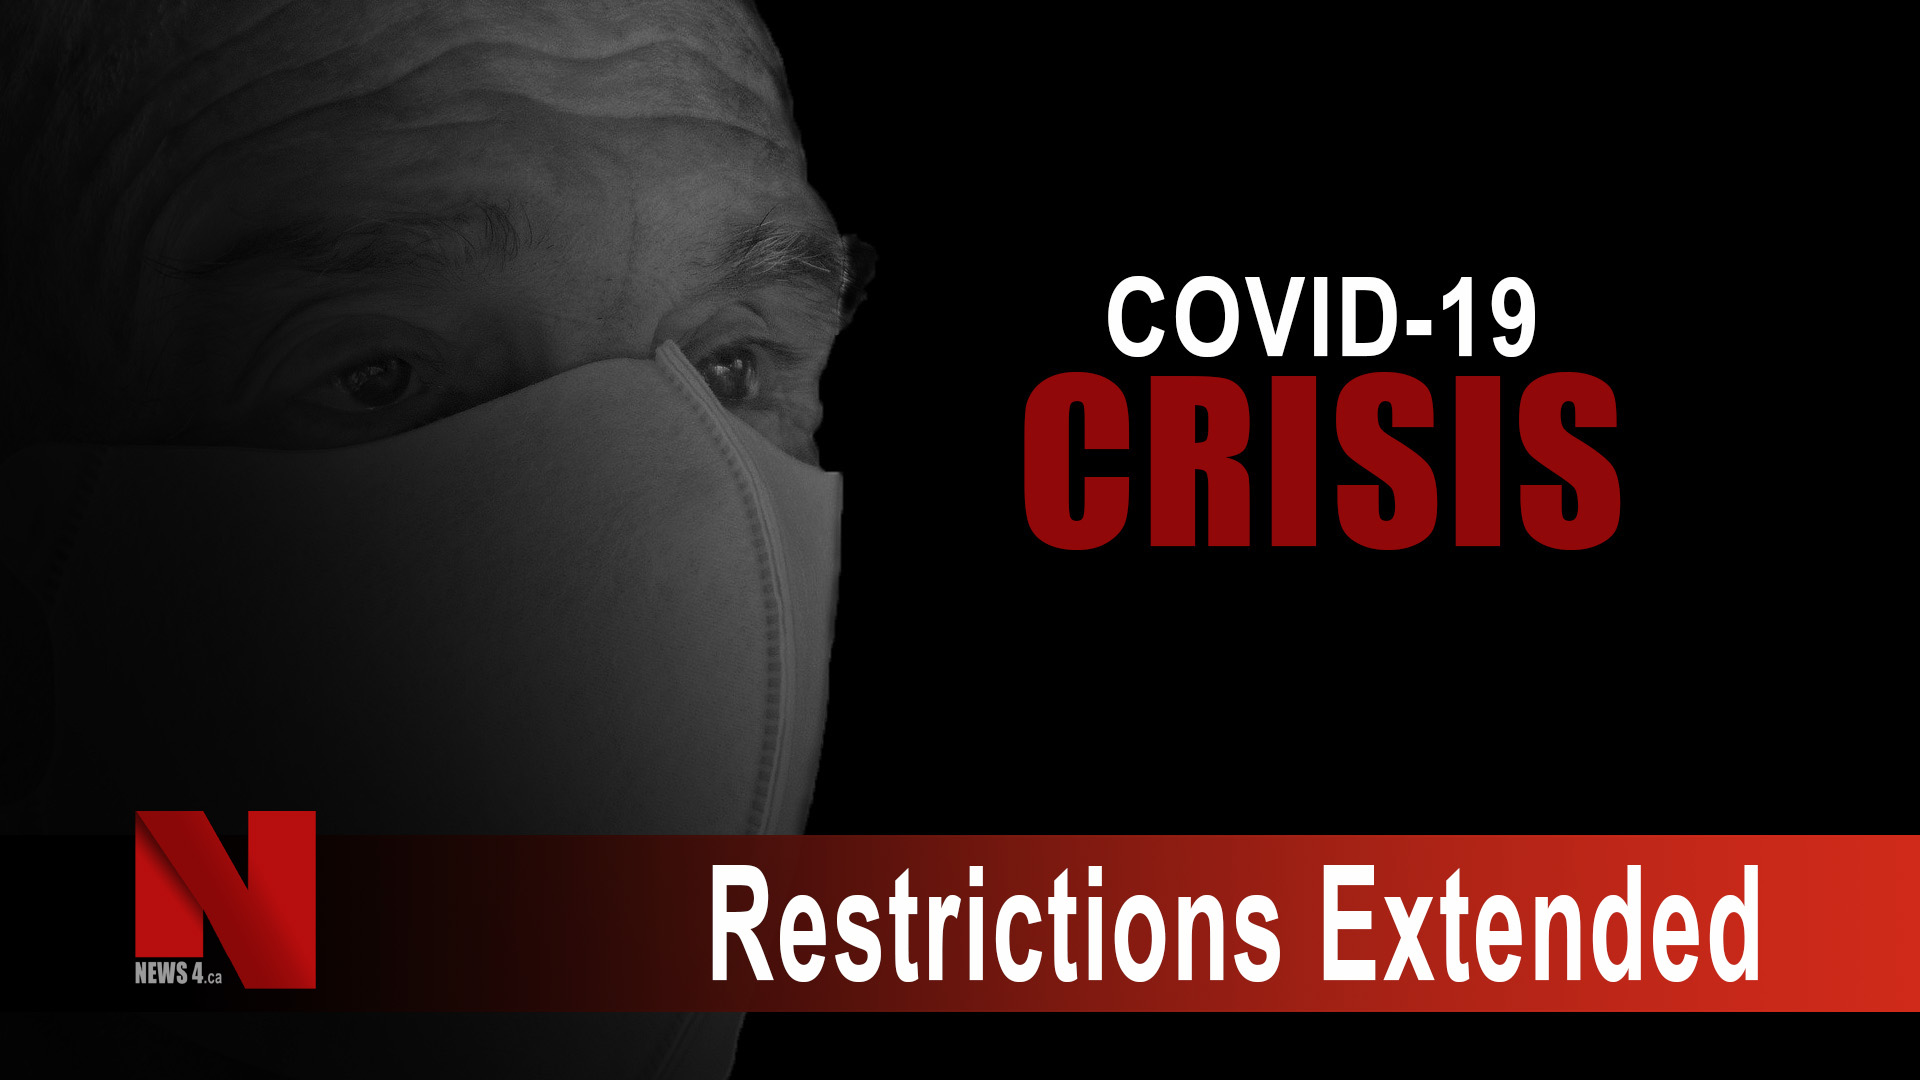 Covid restrictions extended